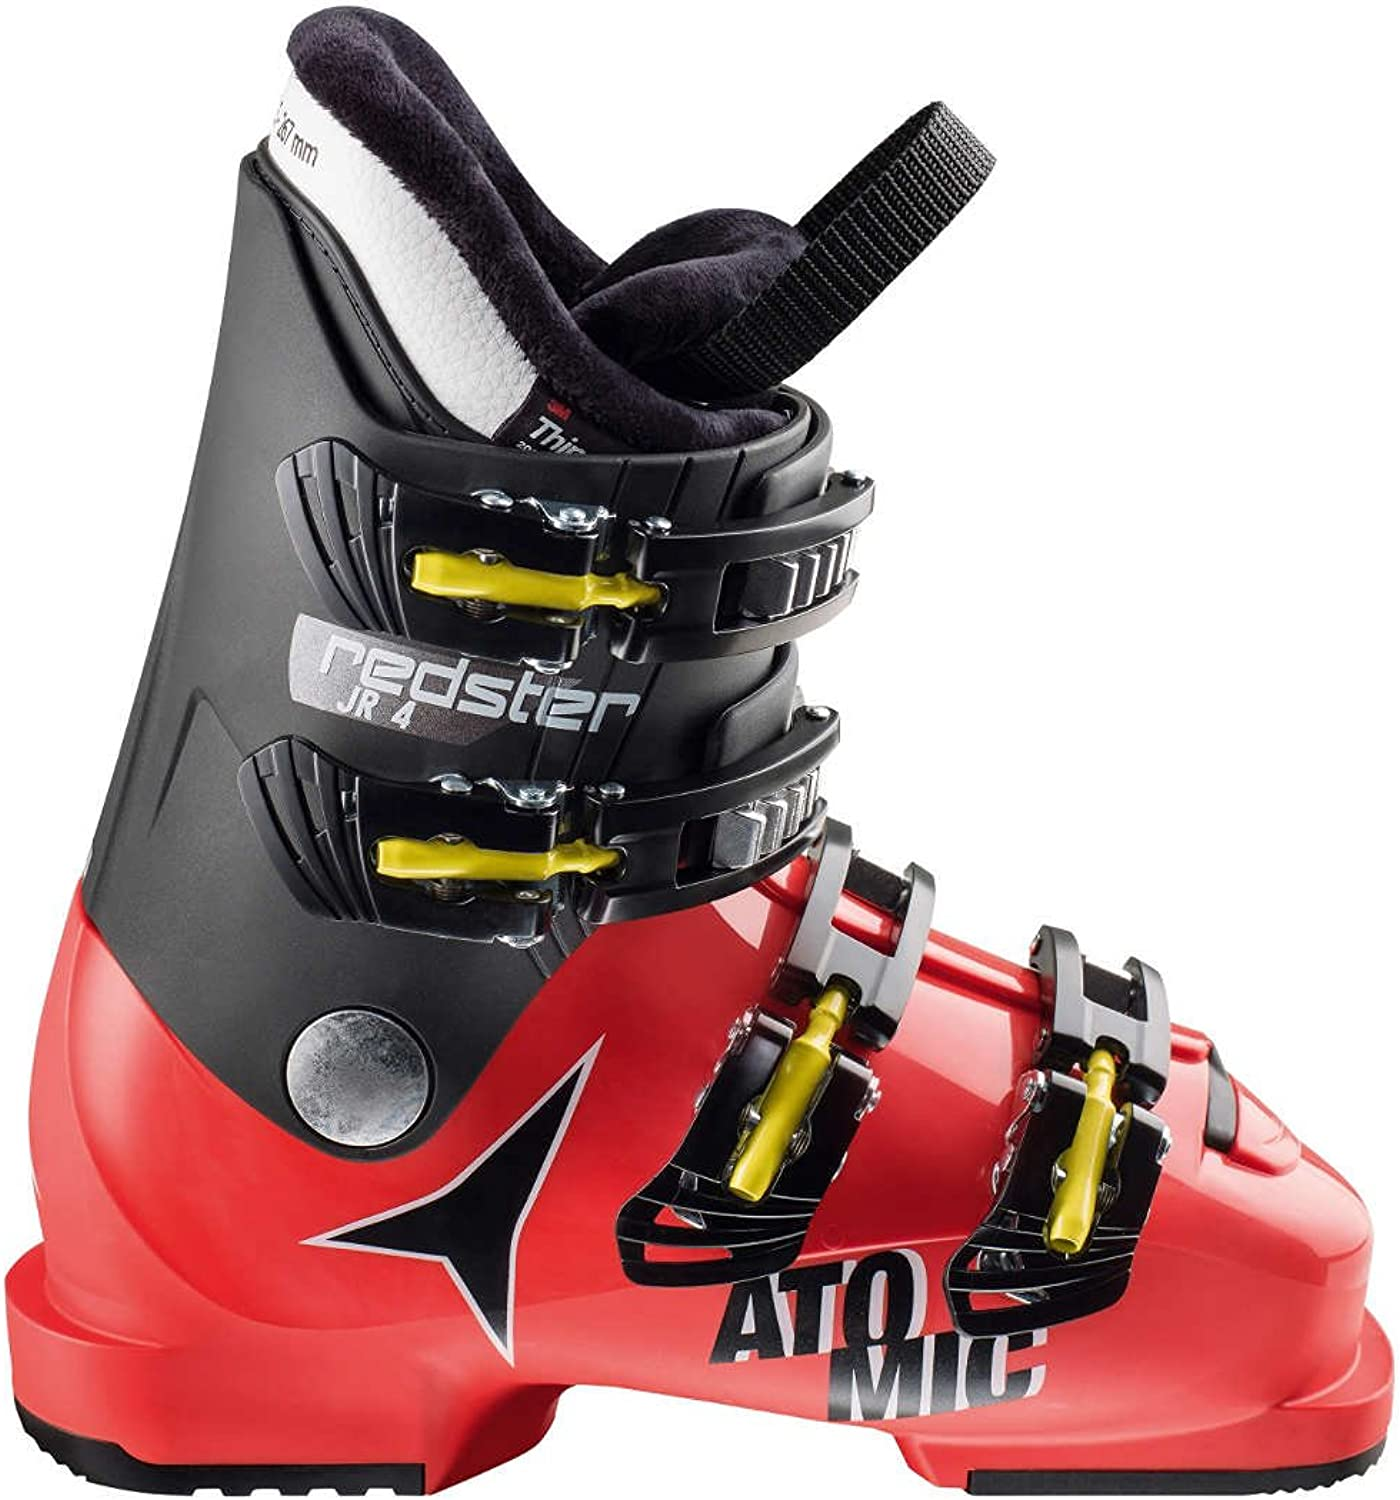 Atomic Kinder Skischuh rotster 4 2015 Youth B00O9QNFPS B00O9QNFPS B00O9QNFPS  Angemessener Preis 7d9831